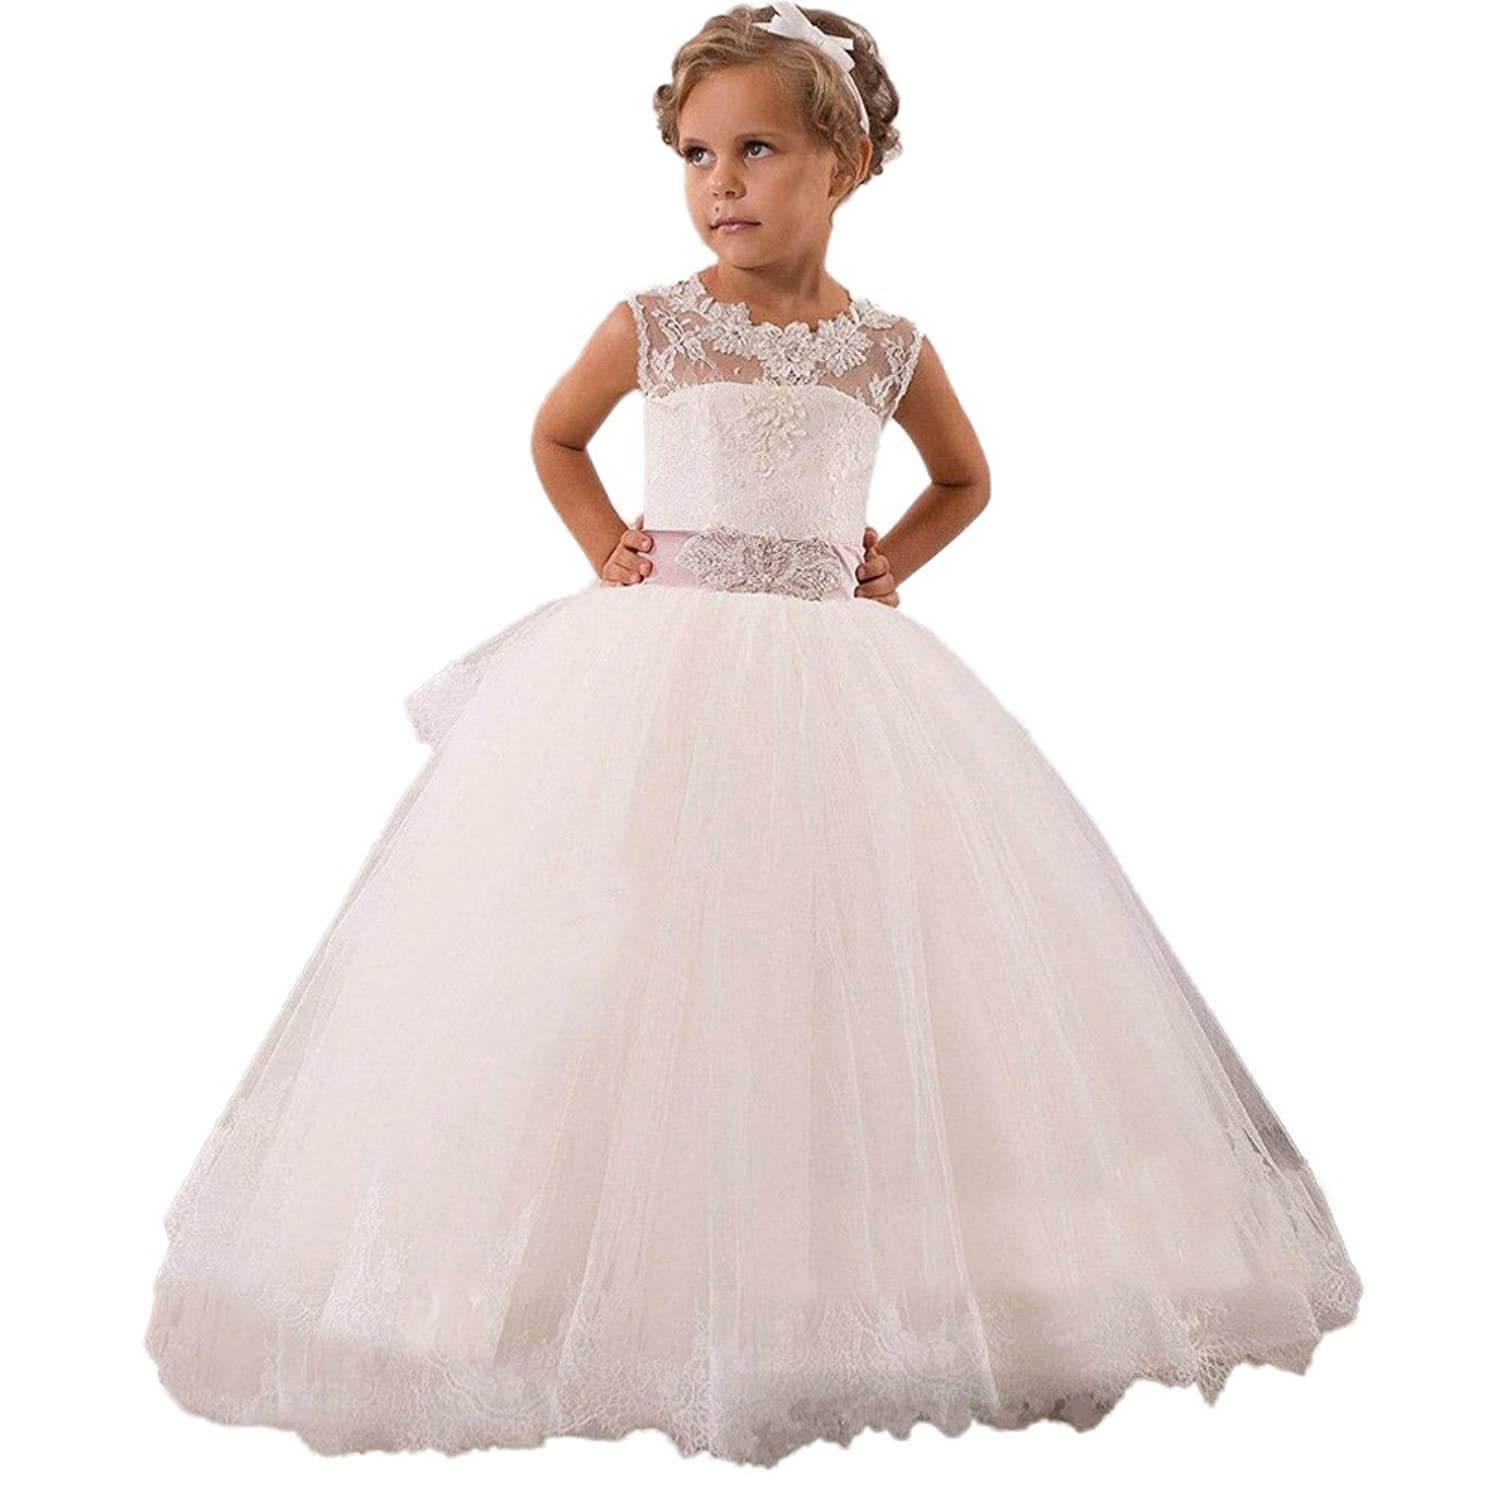 Flower Girl Princess Dresses Dress